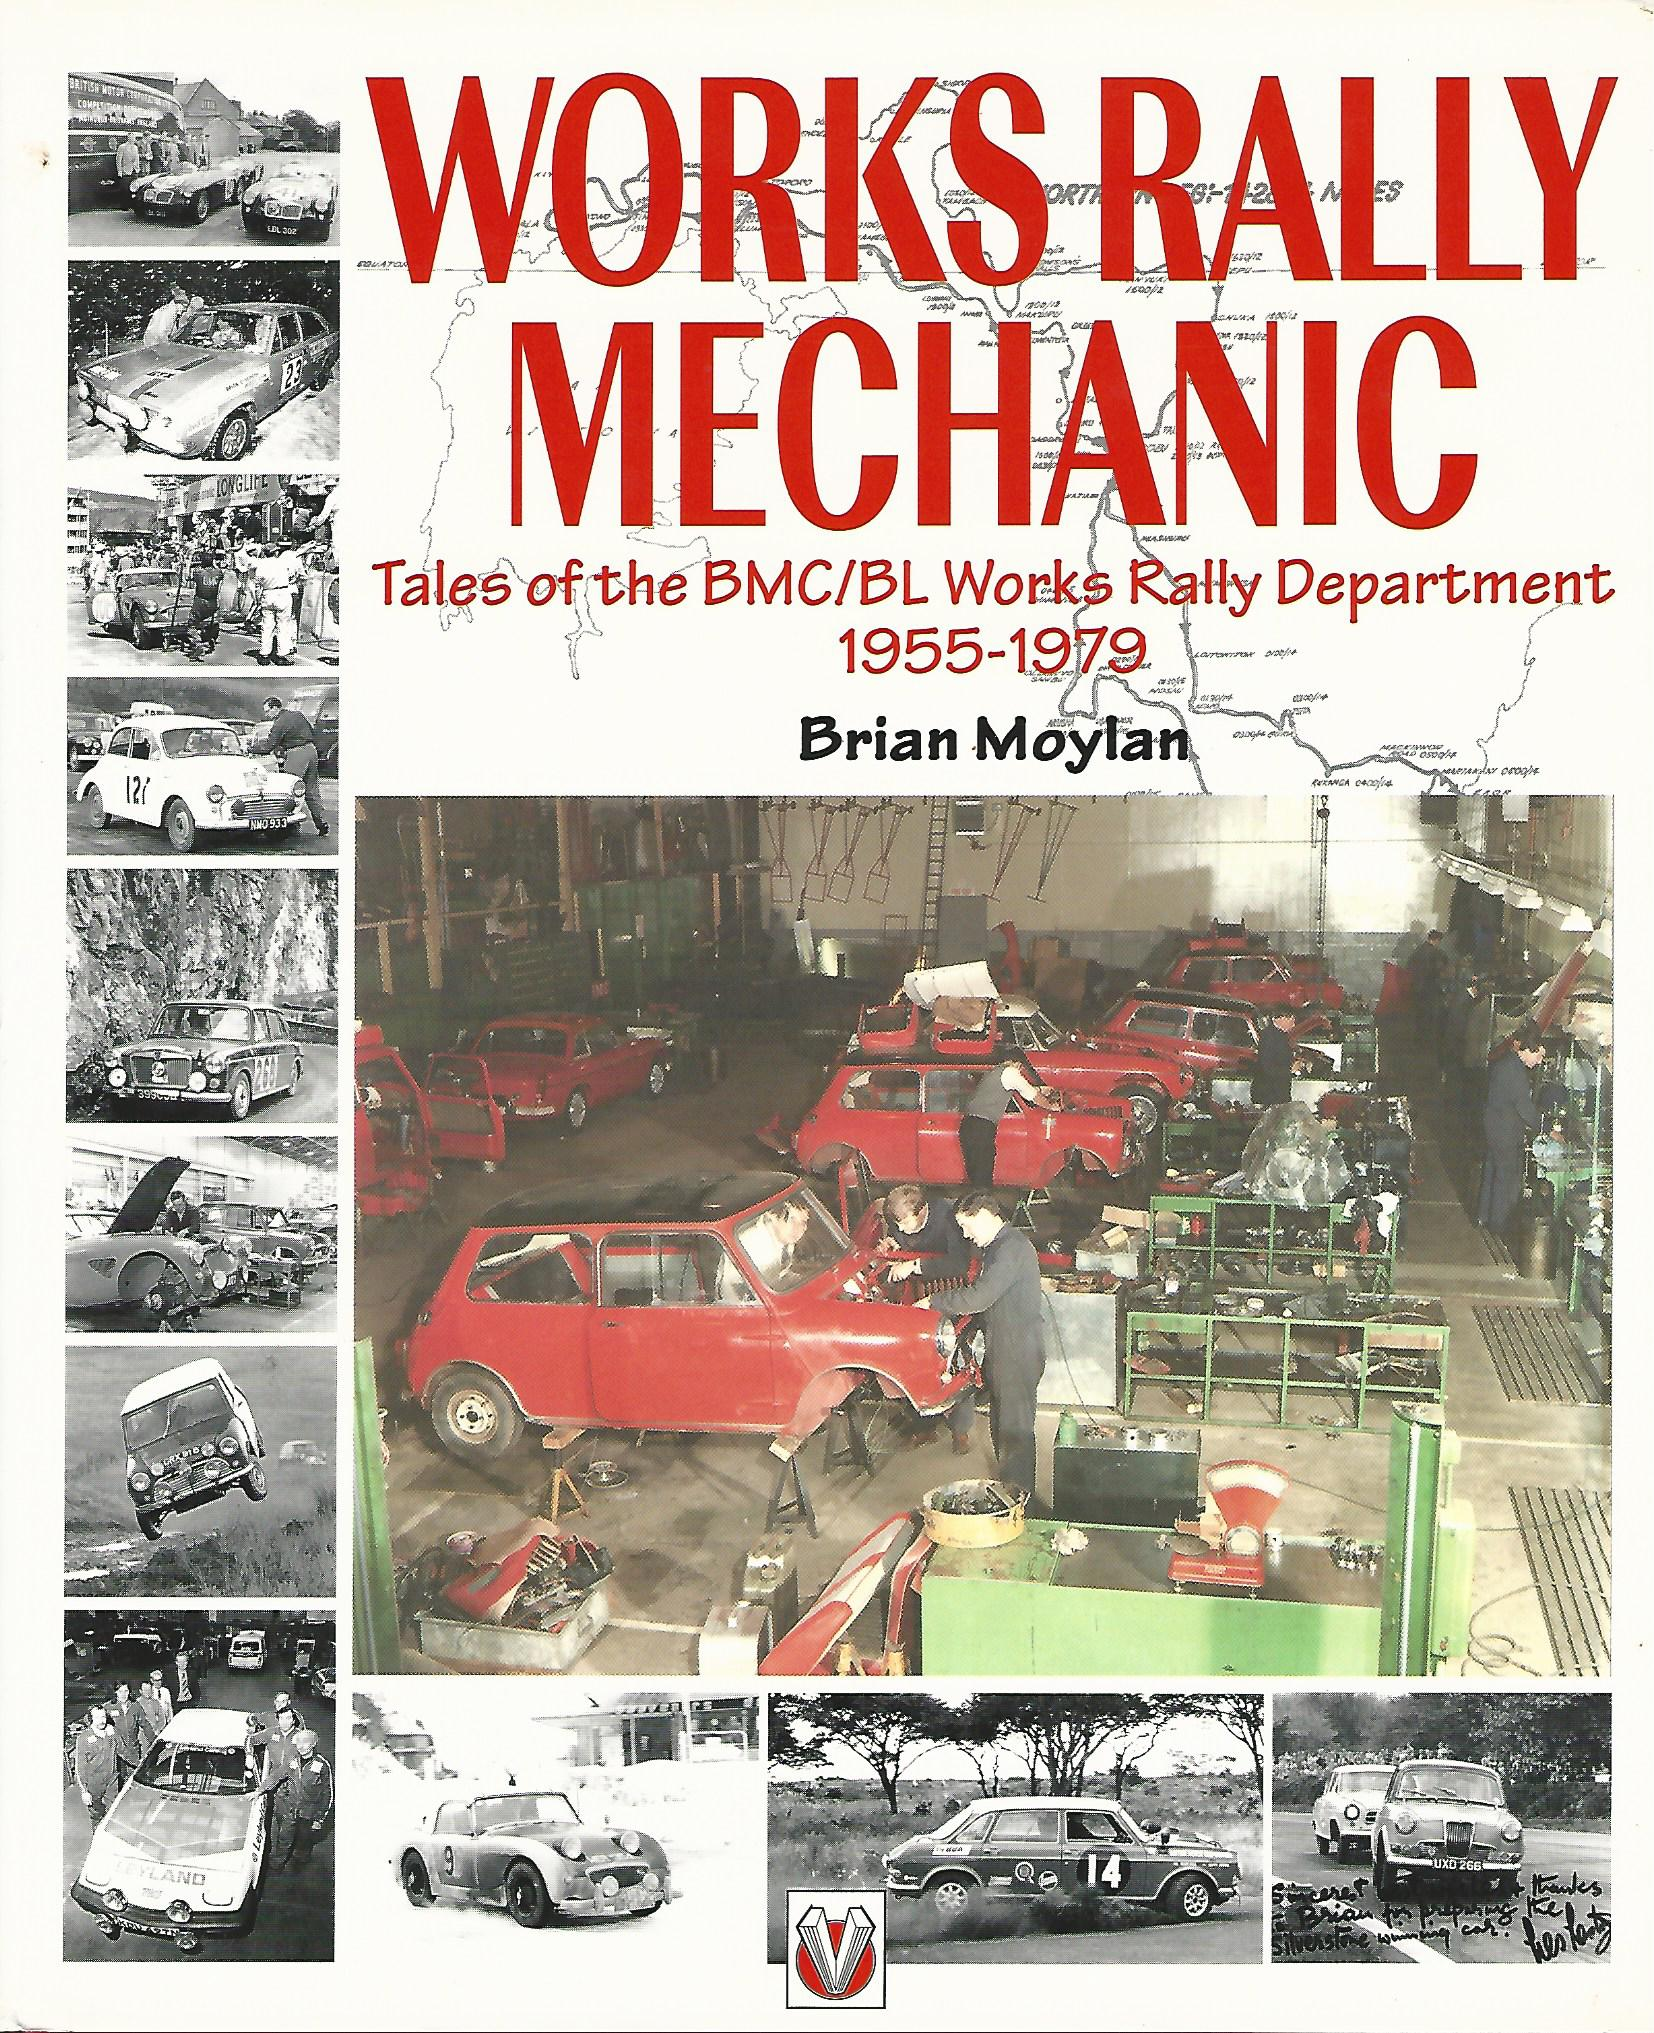 Image for Works Rally Mechanic: Tales of the BMC/BL Works Rally Department, 1955-79 (Motorsport Books).